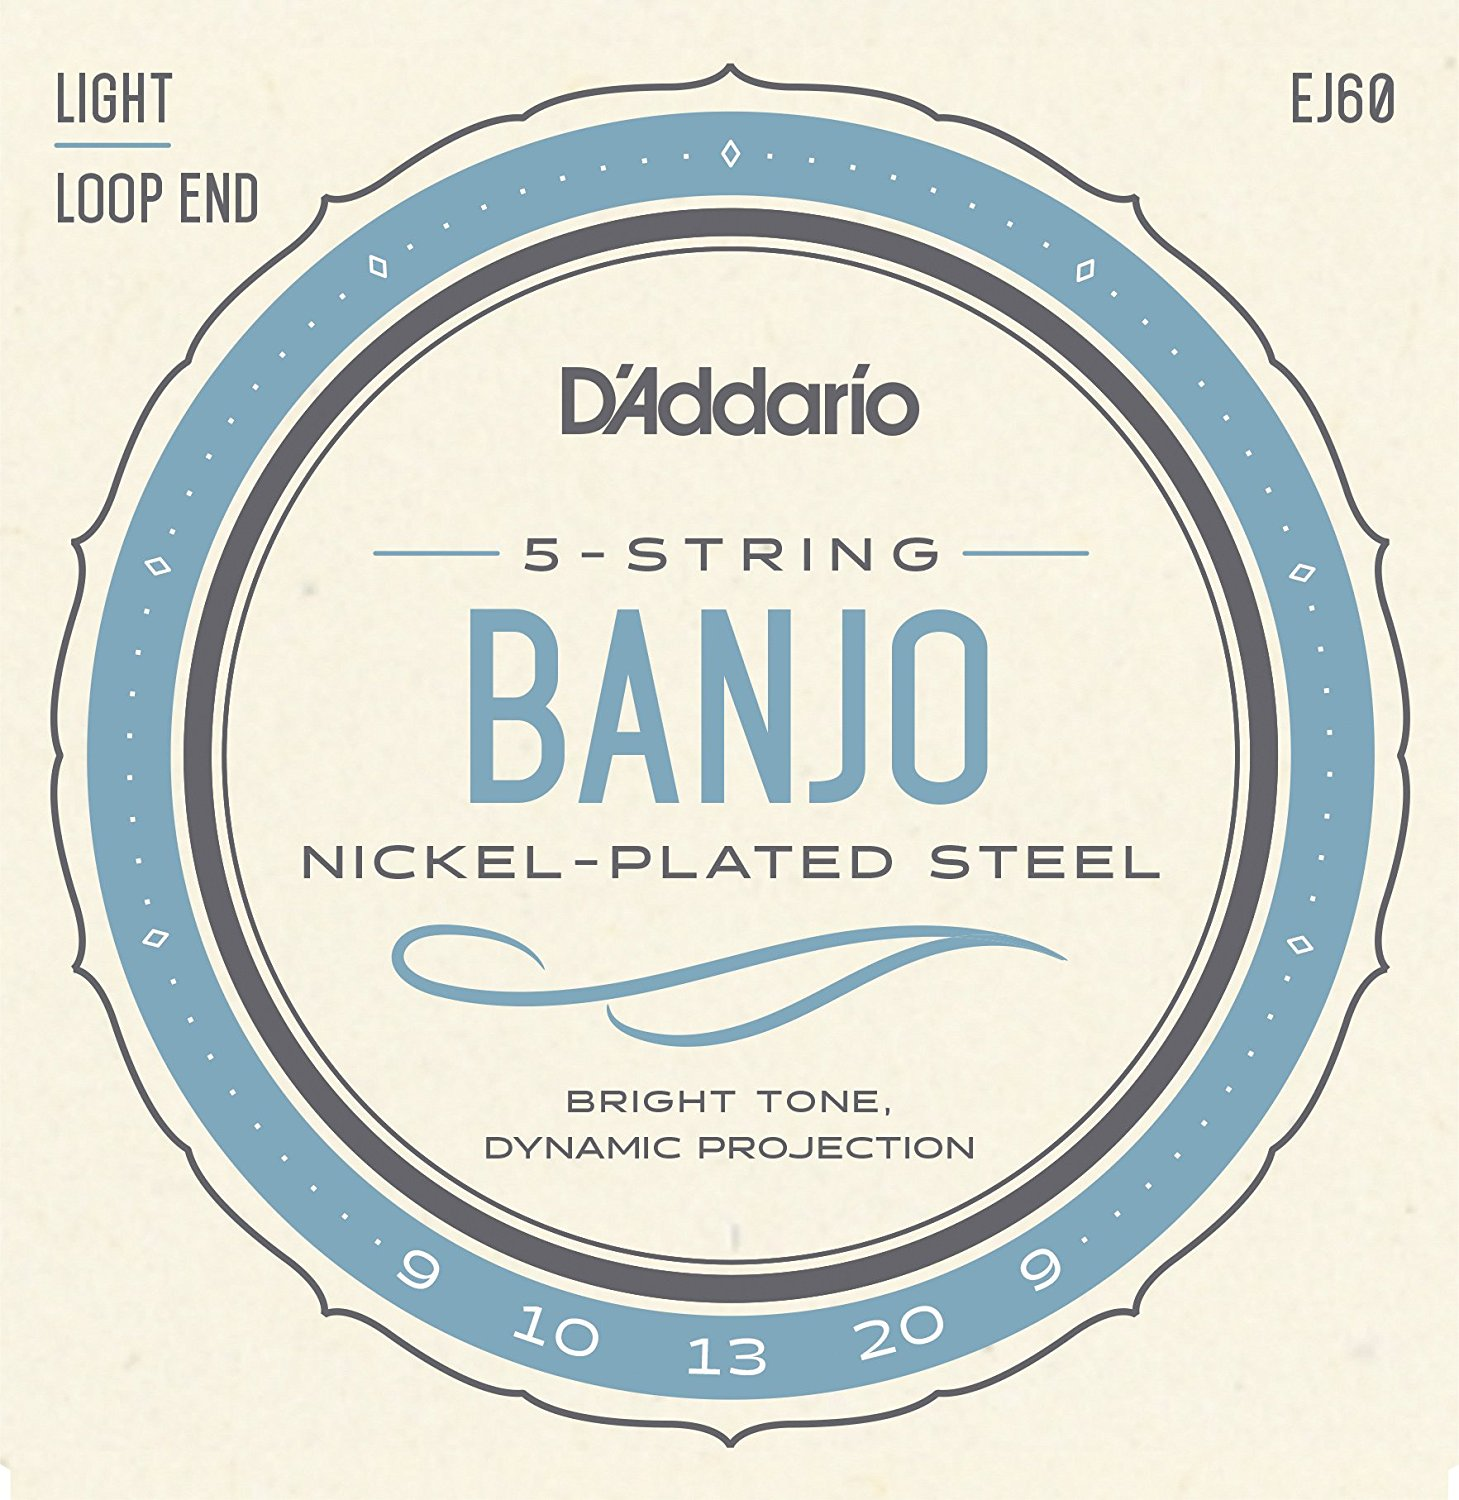 D Addario EJ60 5-String Banjo Strings, Nickel, Light, 9-20